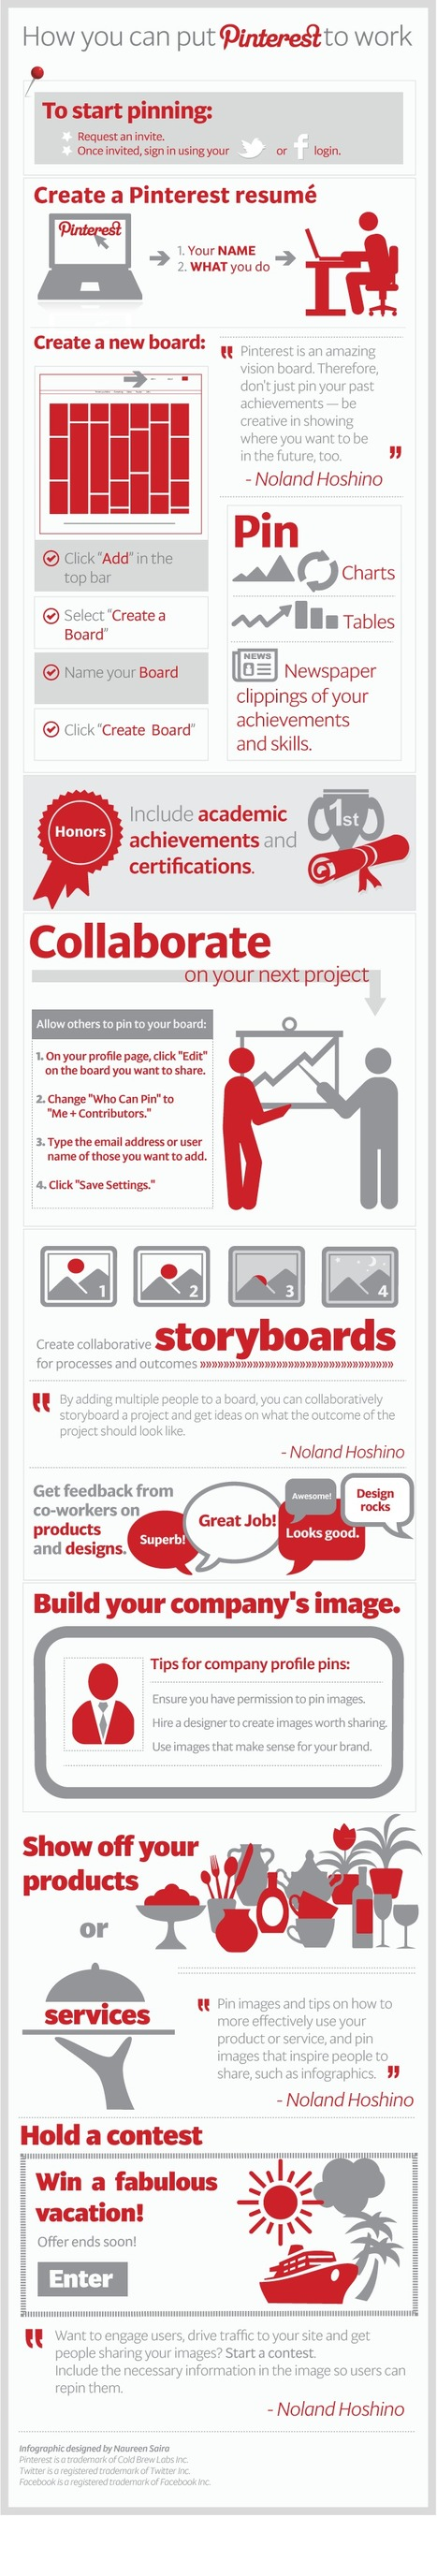 Great Pinterest Tips for Students | Create, Innovate & Evaluate in Higher Education | Scoop.it